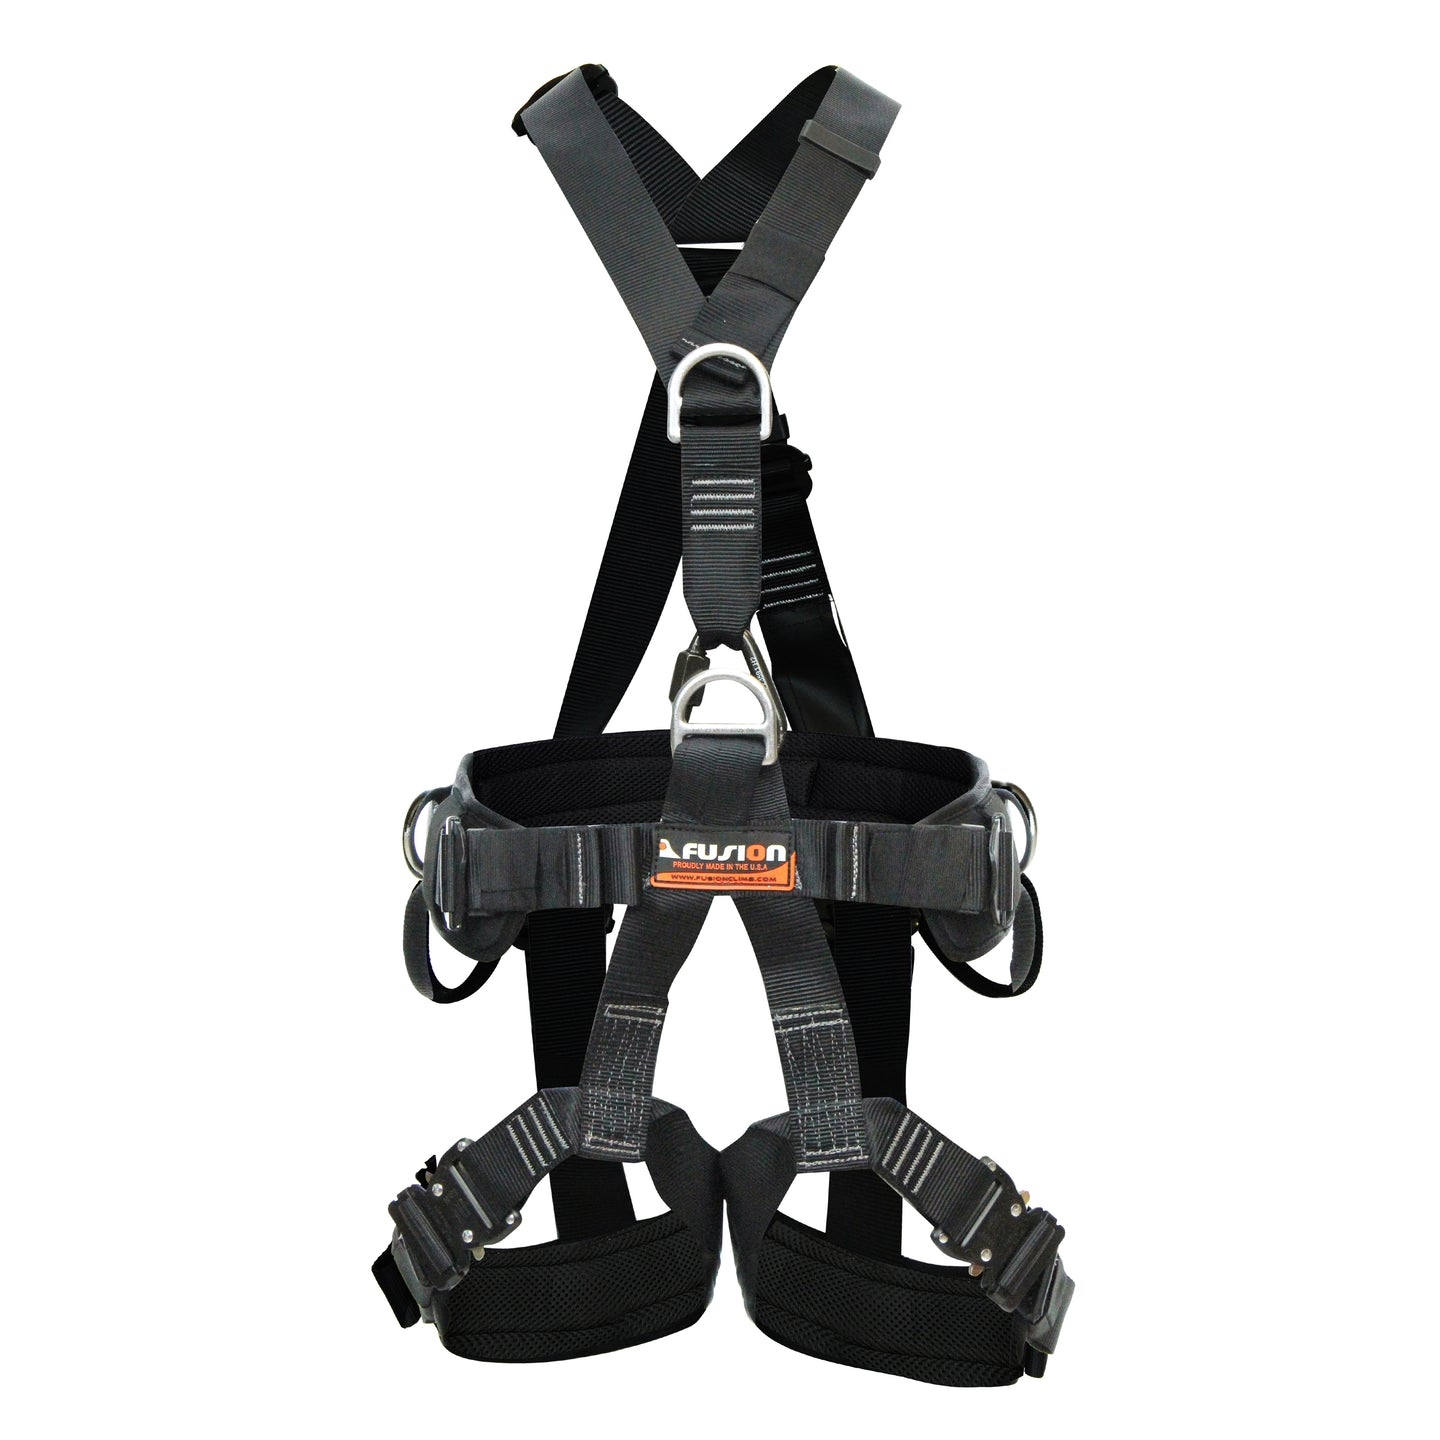 TAC-SCAPE LITE RESCUE HARNESS WITH STEEL QUICK RELEASE LEG BUCKLES